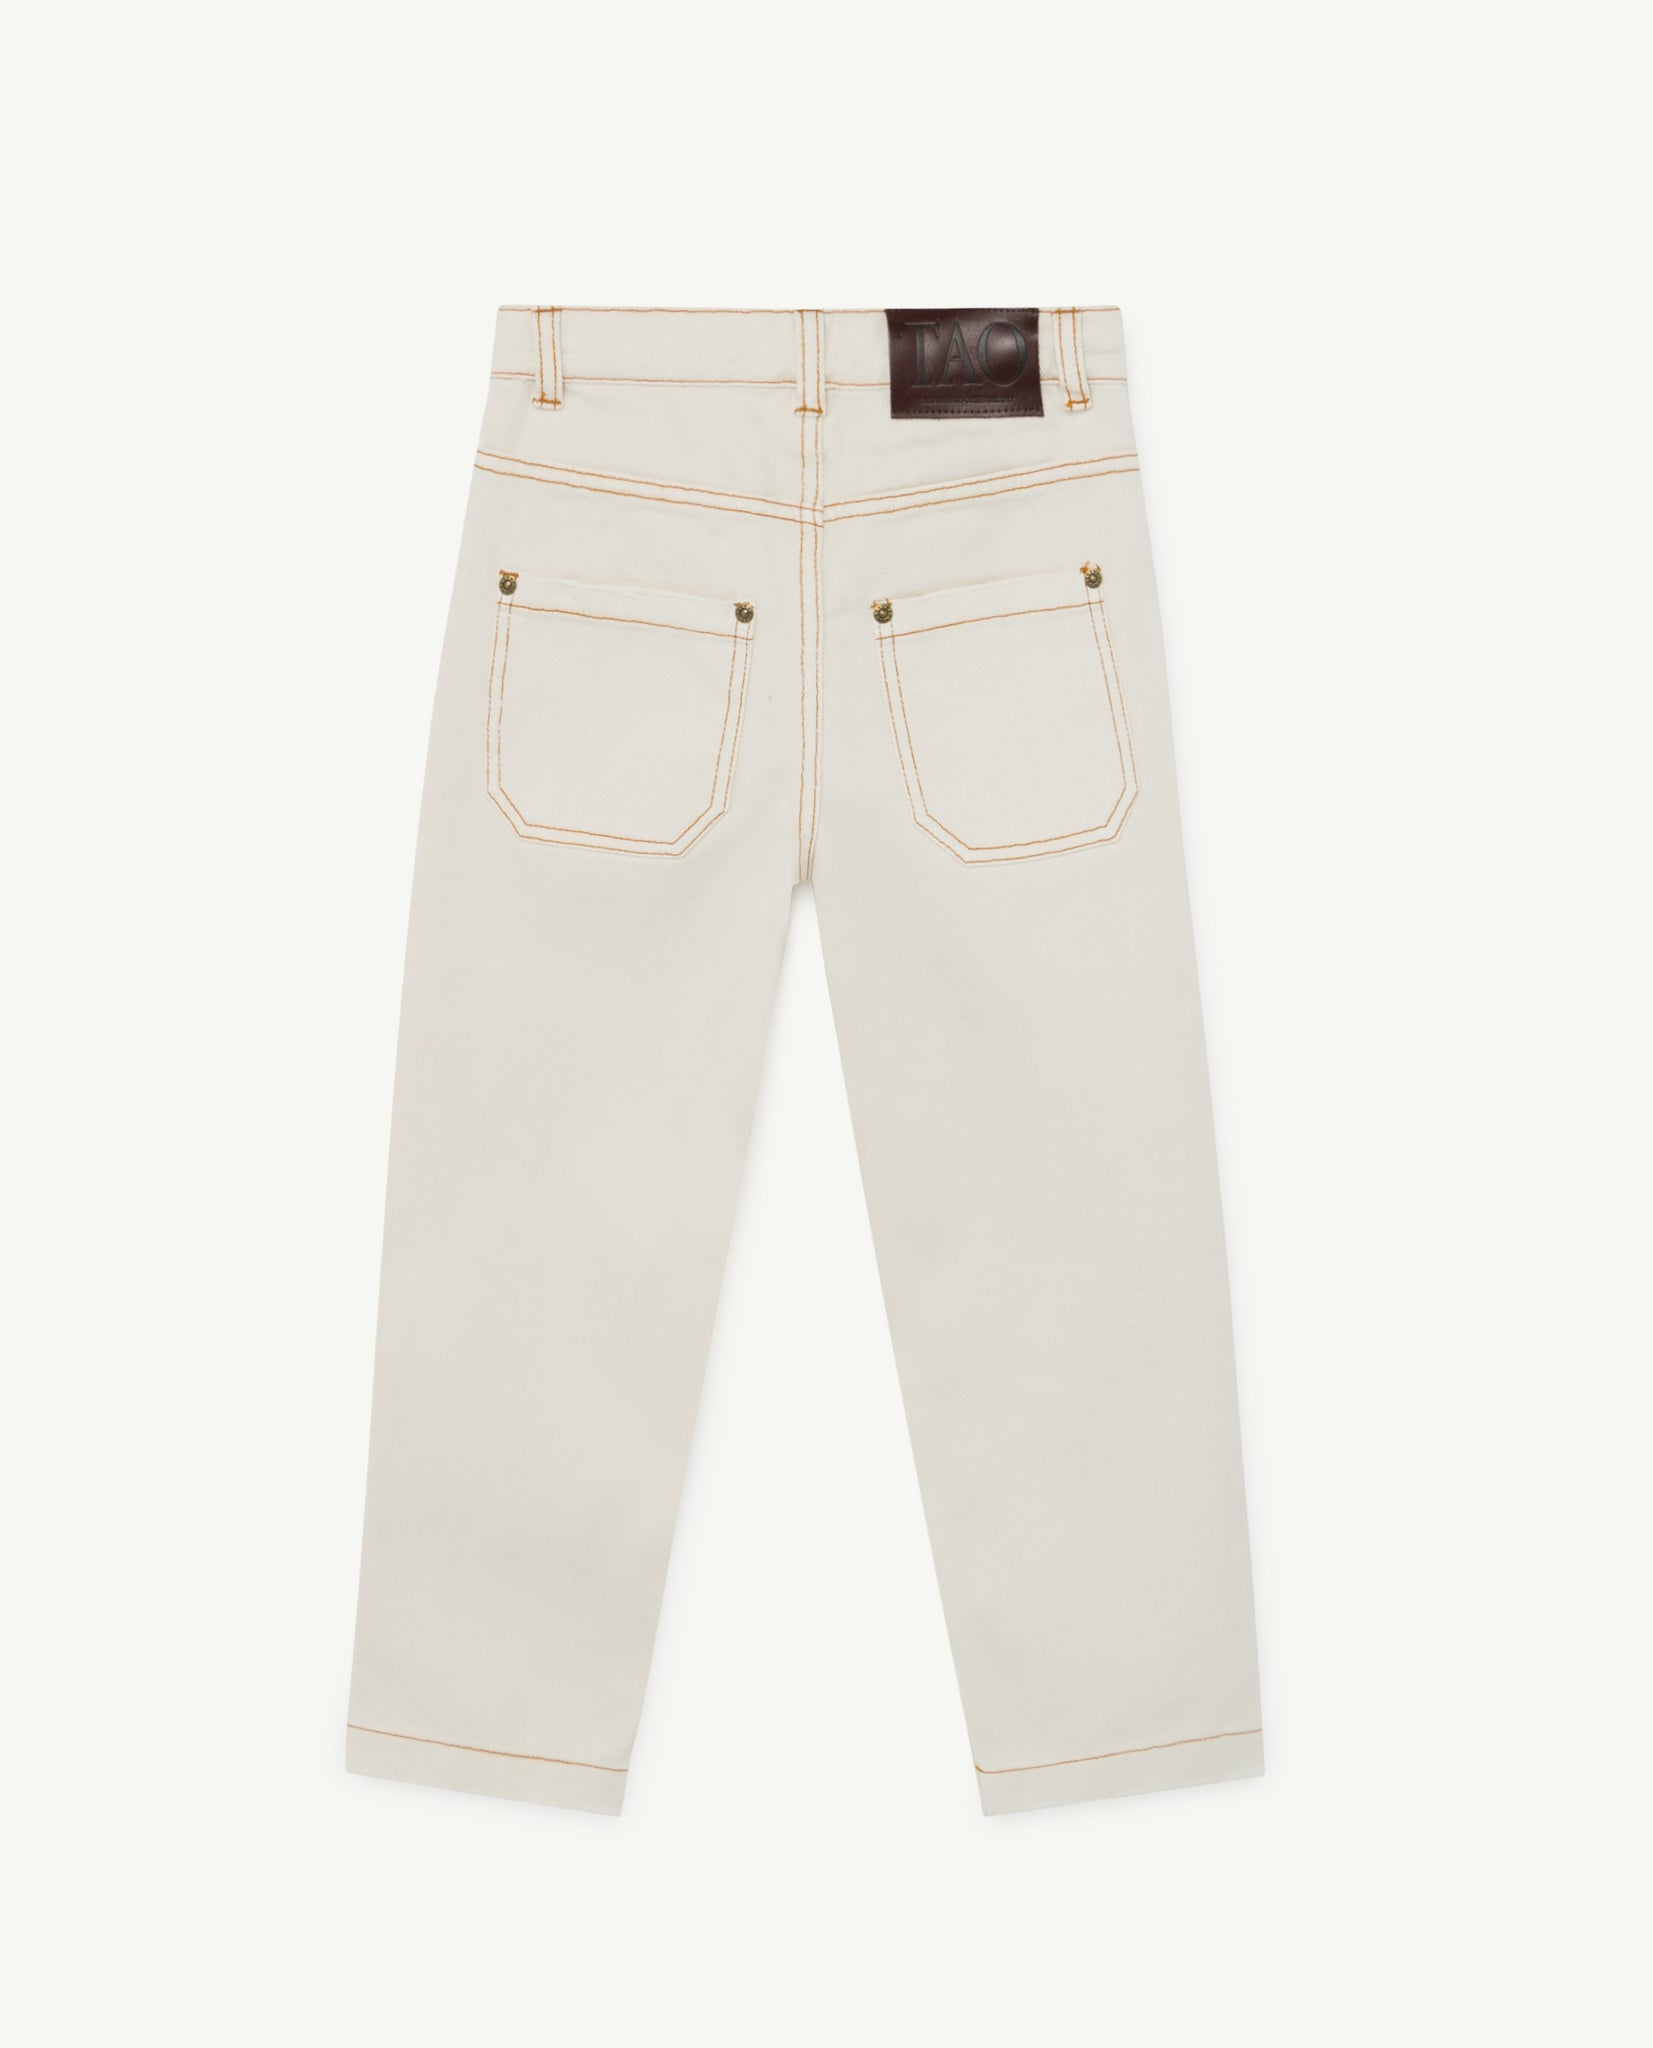 Ant Kids Trousers - White The Animals